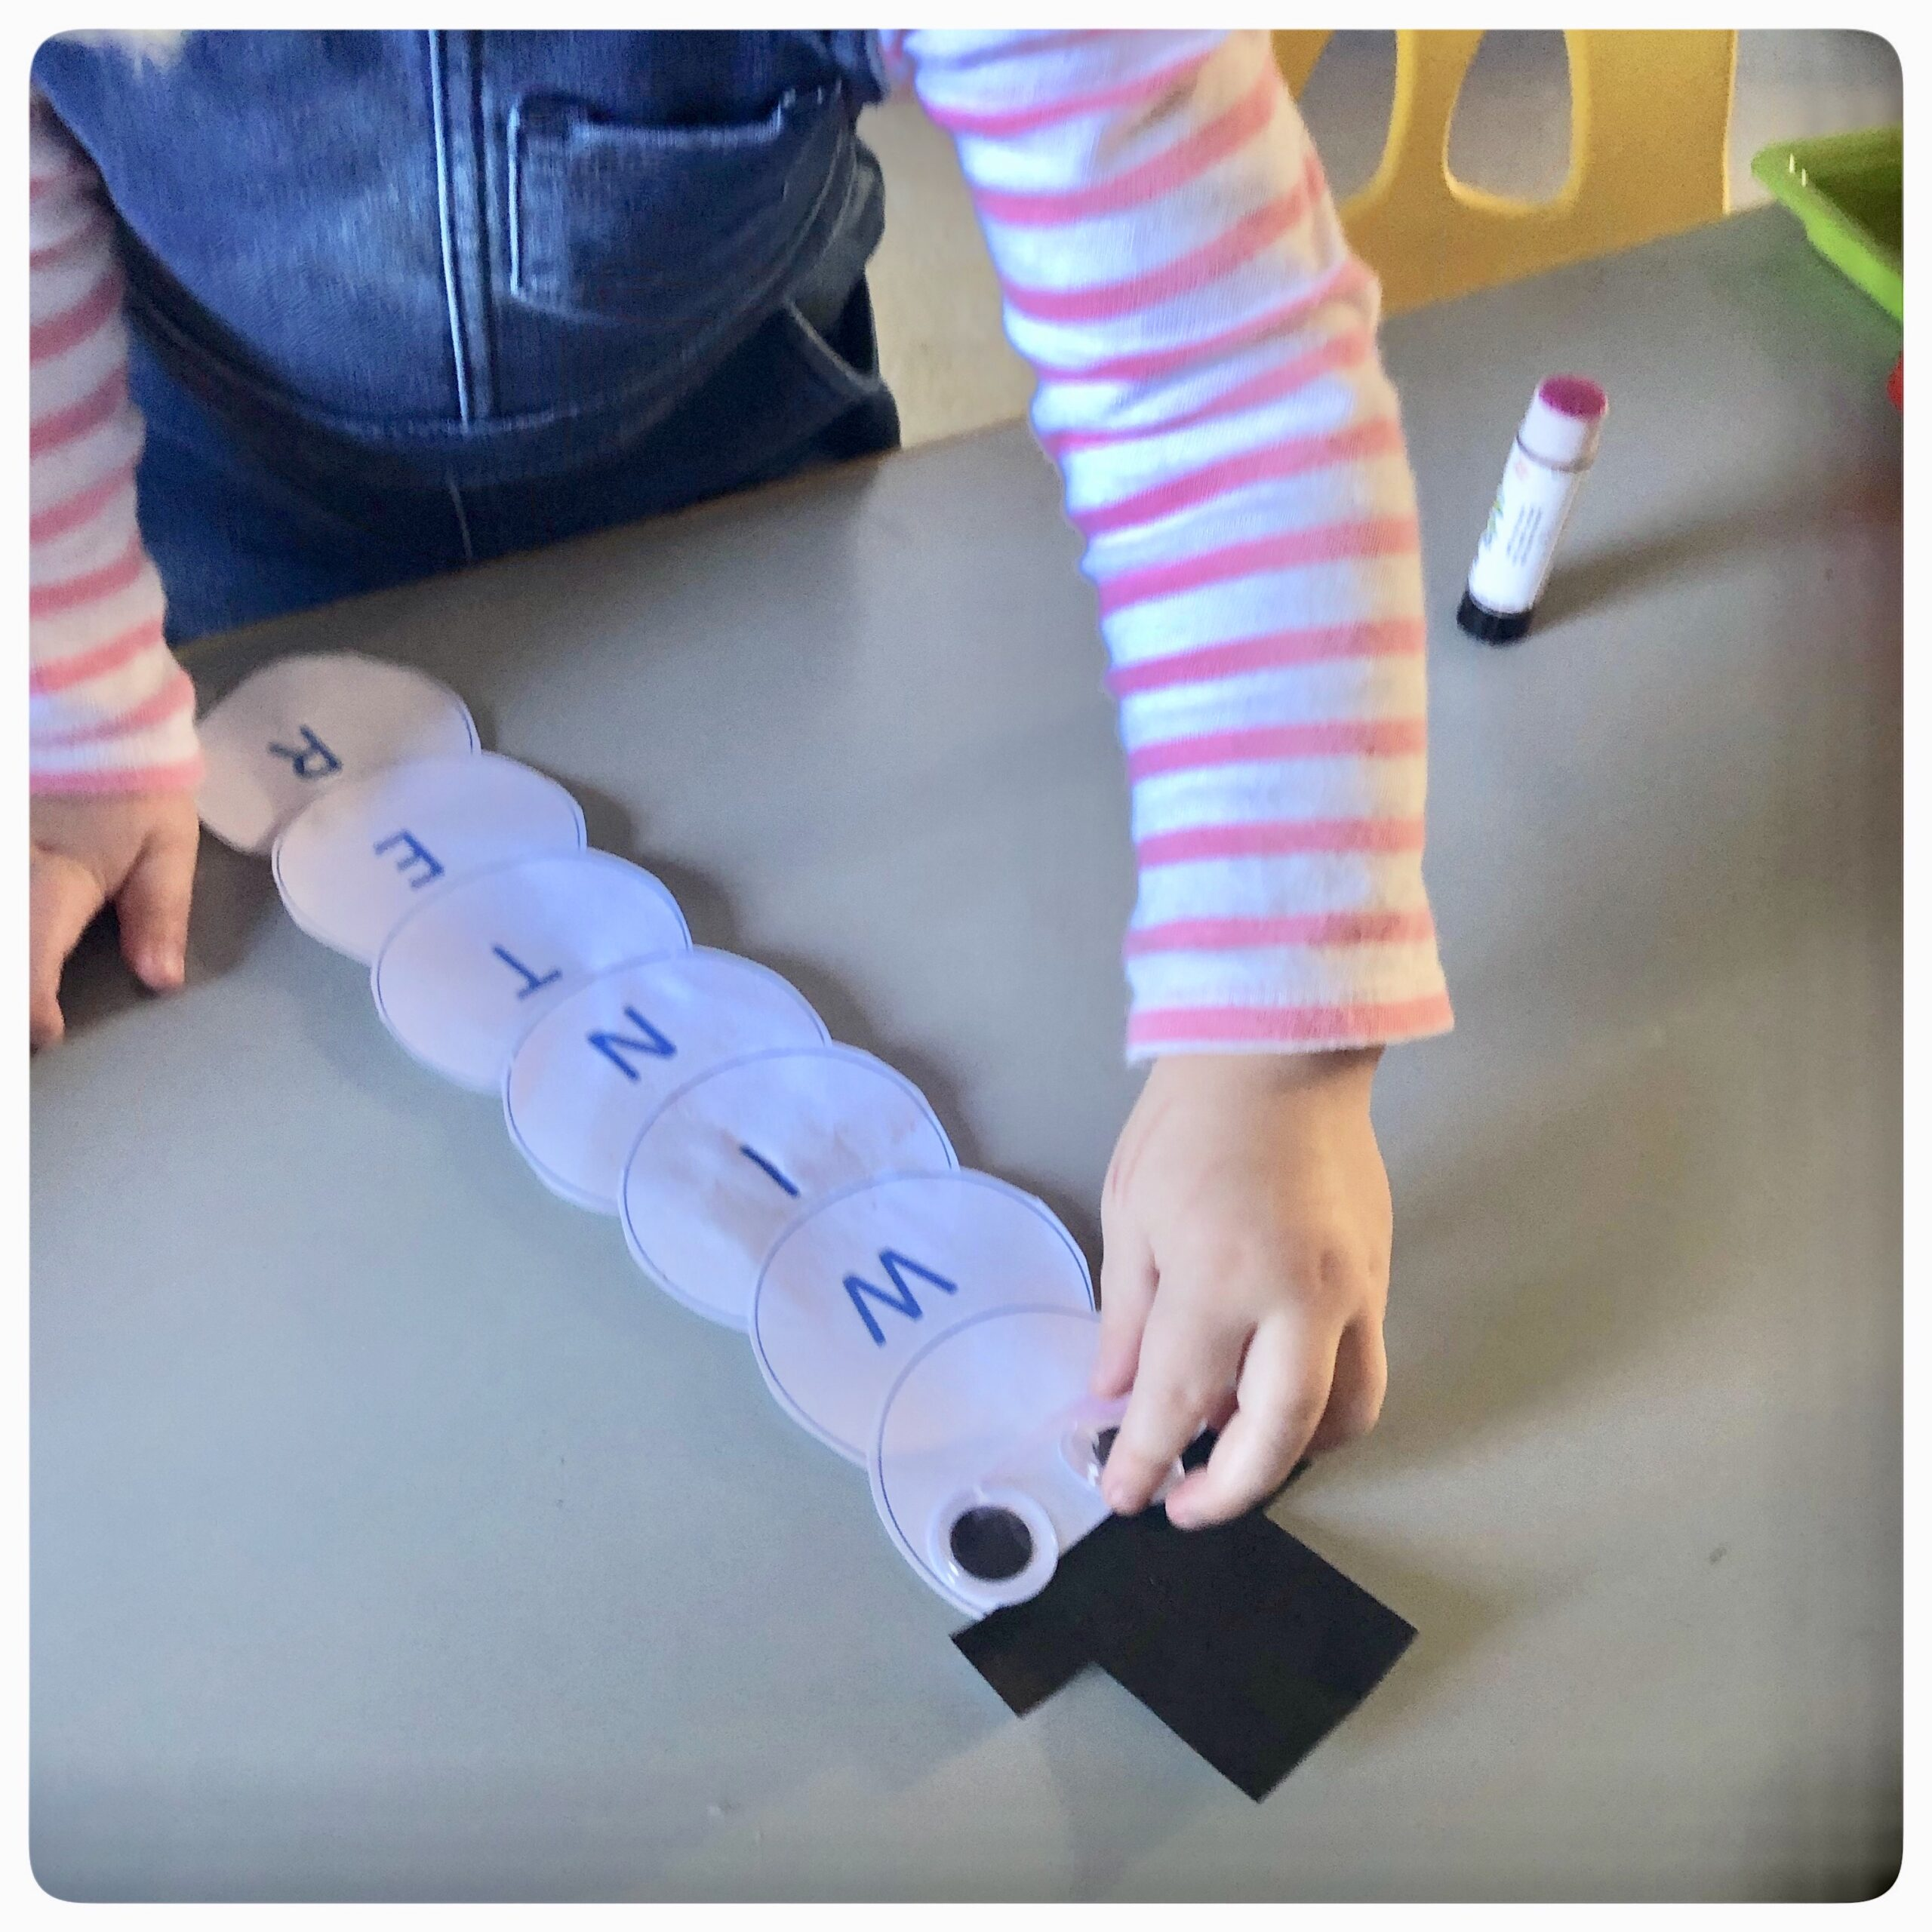 We're ready for winter now with our Snowmen! This fun activity is great for letter recognition & fine motor skill development. 👉🏼 swipe to see how we set this up. ⛄️ Each child had the circles with letters of their name, plus one blank circle, and one black top hat. We talked about the first letter of everyone's name and each child picked their letter out. With some help, they glued their letters together and added the top hat. Then the fun of choosing which wiggly eyes to put on 👀 They were So proud. Just look at their sweet faces! 🥰